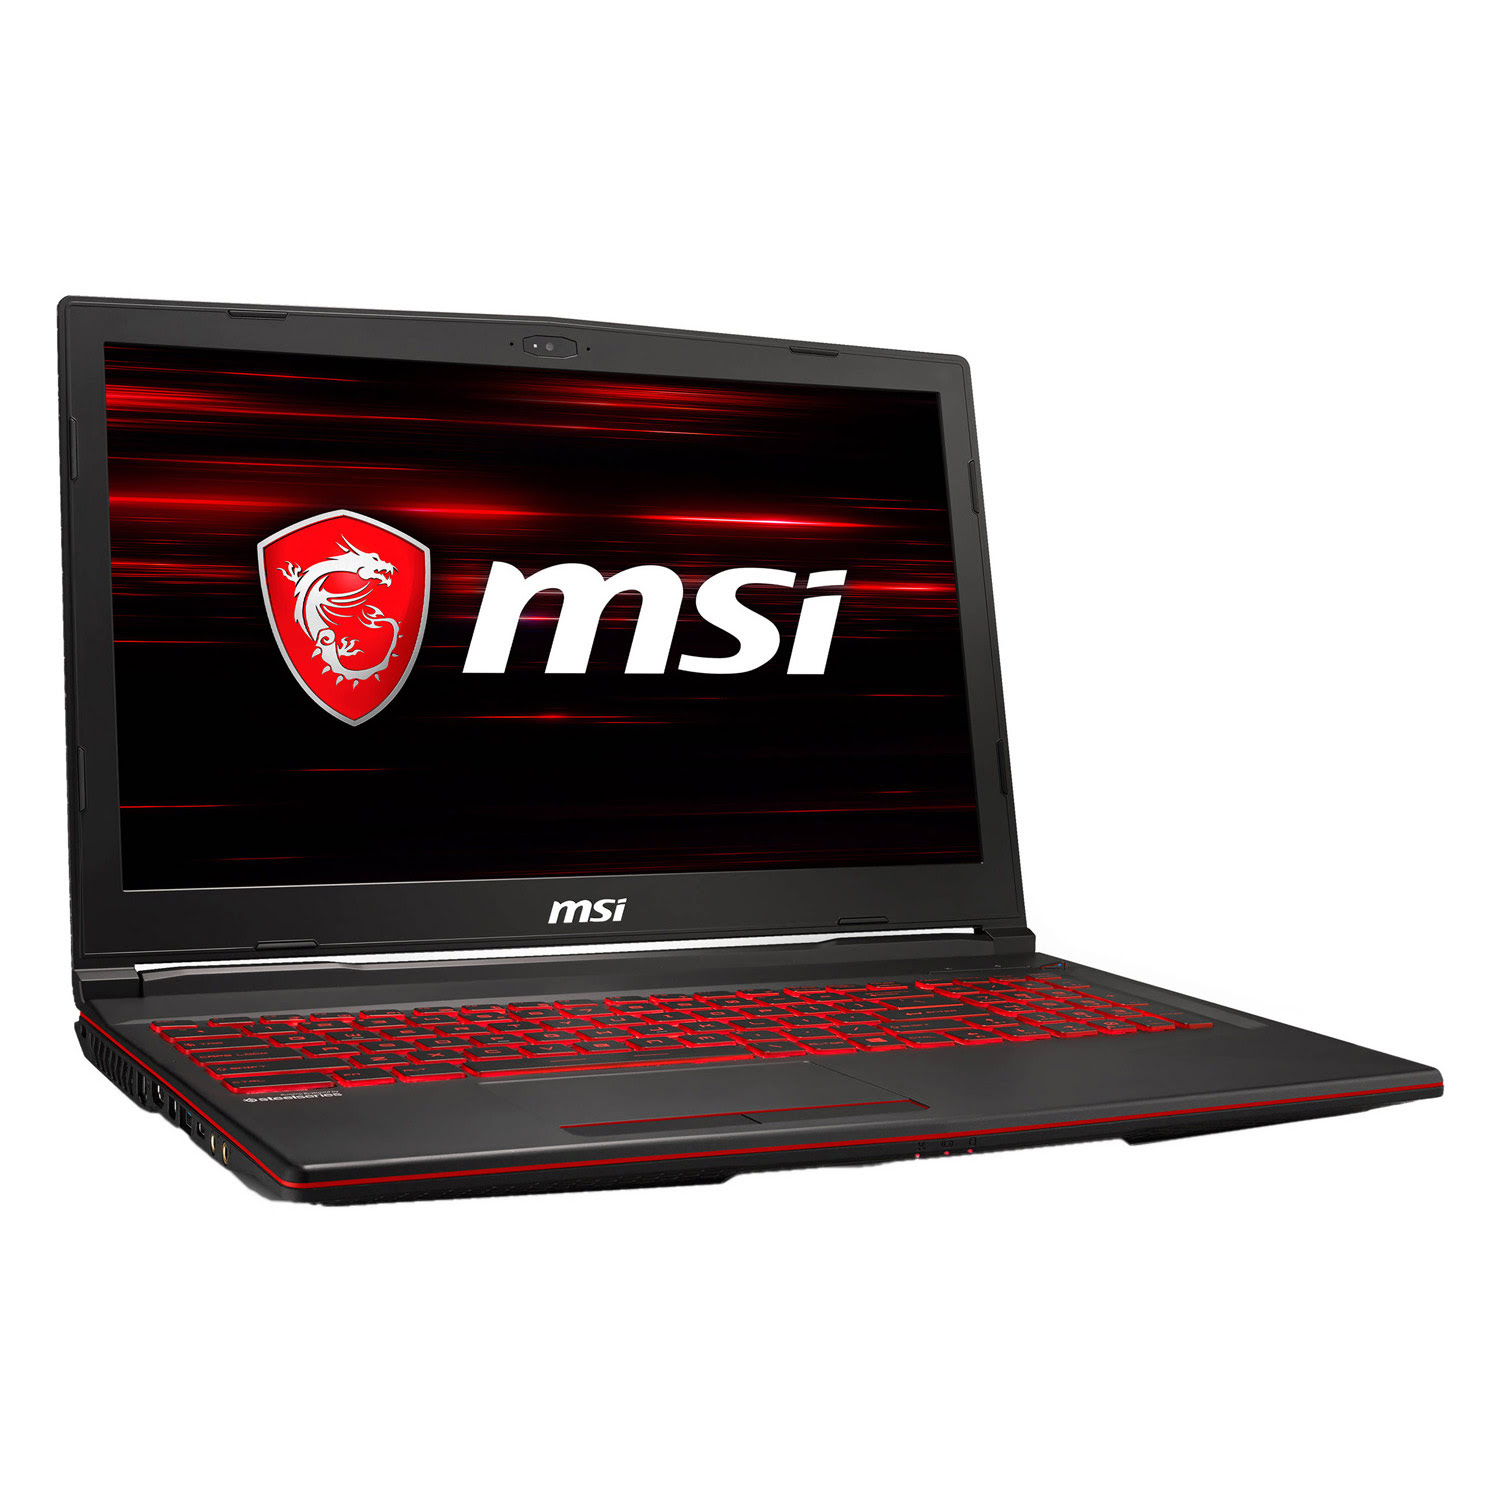 MSI 9S7-16P732-462 - PC portable MSI - Cybertek.fr - 0